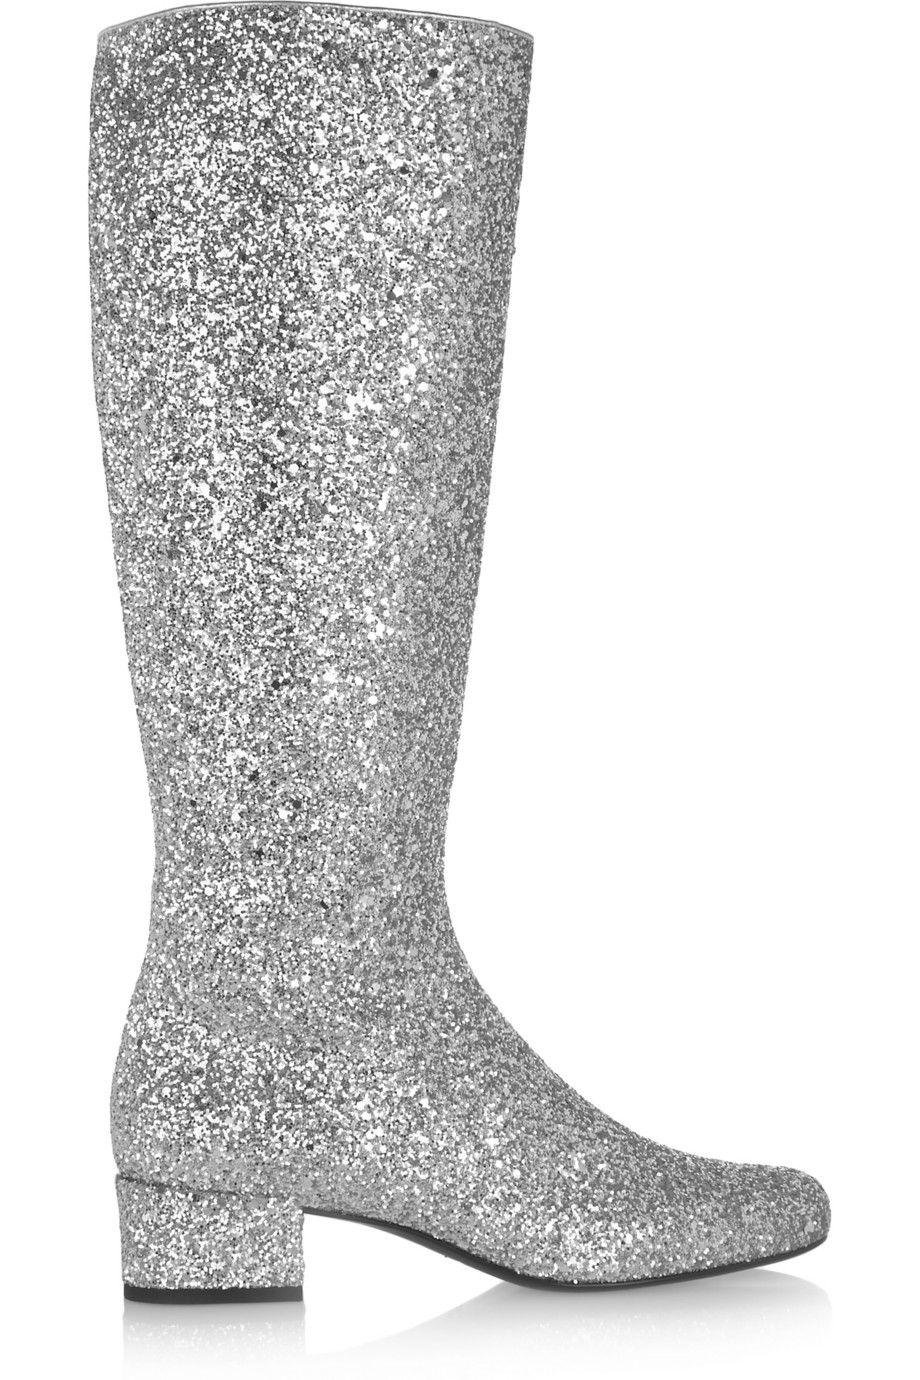 Glitter Thigh High Boots | boots for fun | Pinterest | Čižmy ...